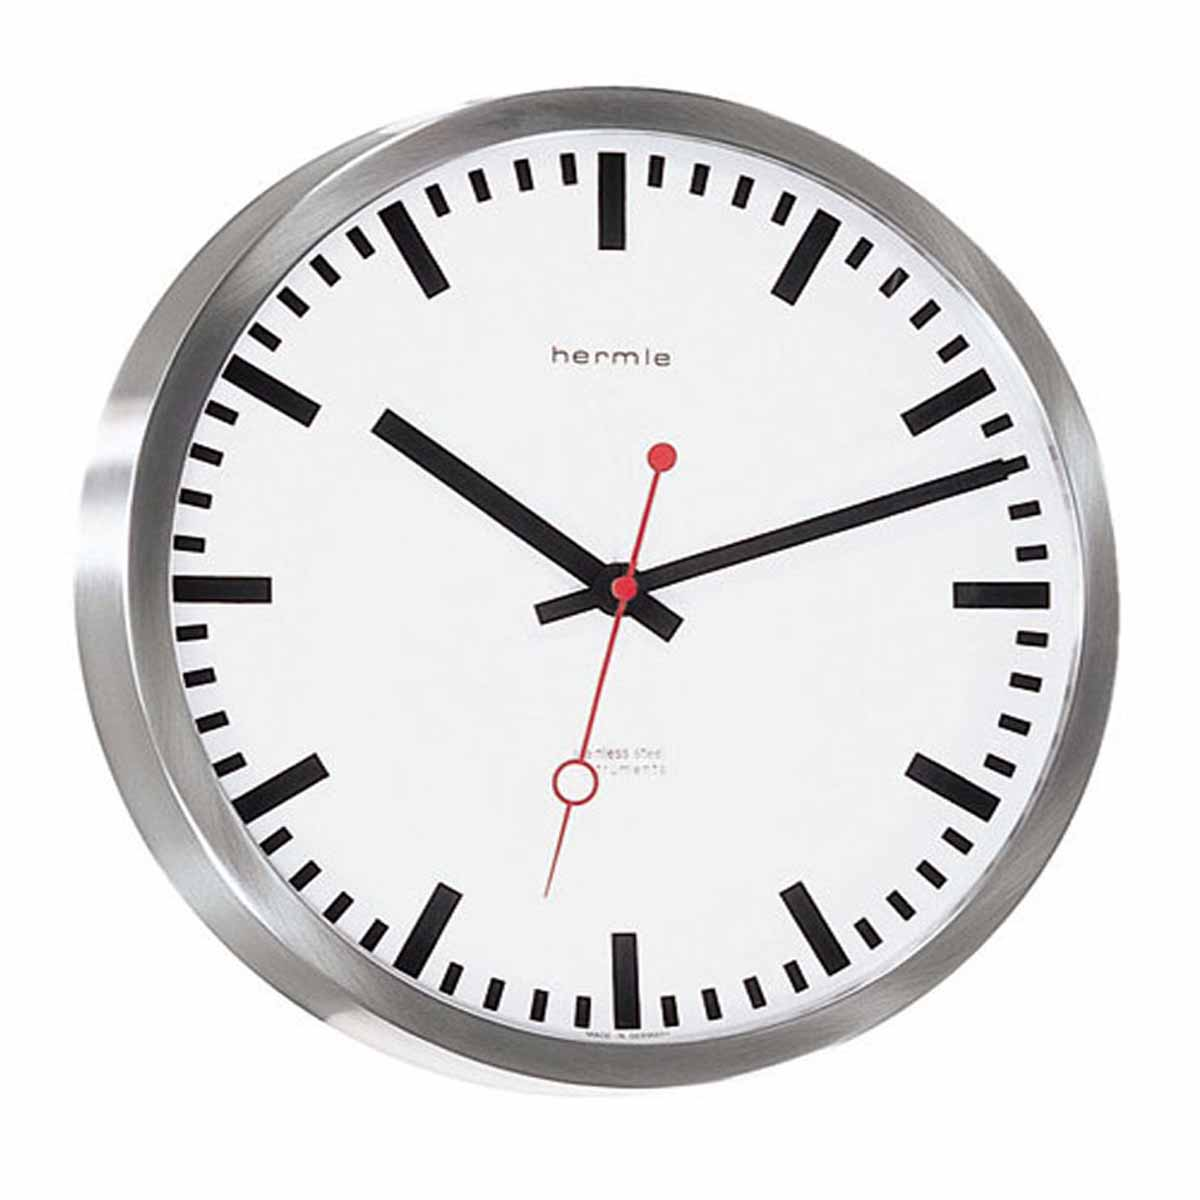 stainless steel wall clock - hermle  stainless steel wall clock